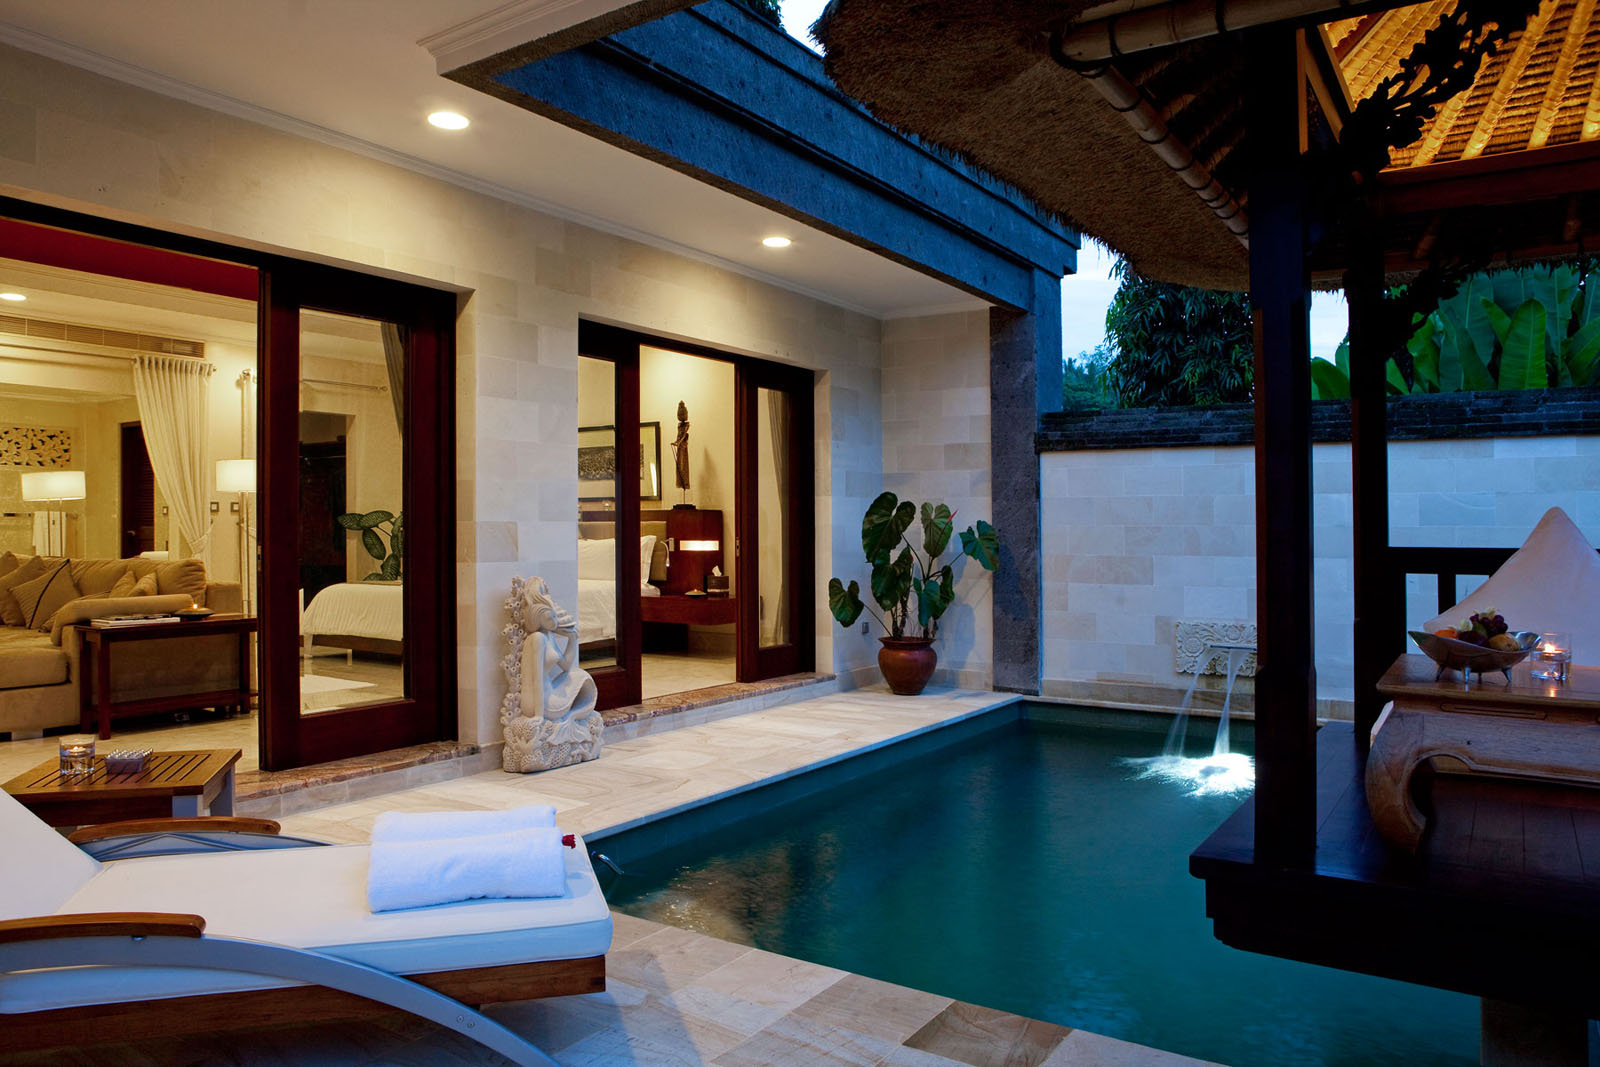 Romantic viceroy bali resort in ubud idesignarch for Pool design villa